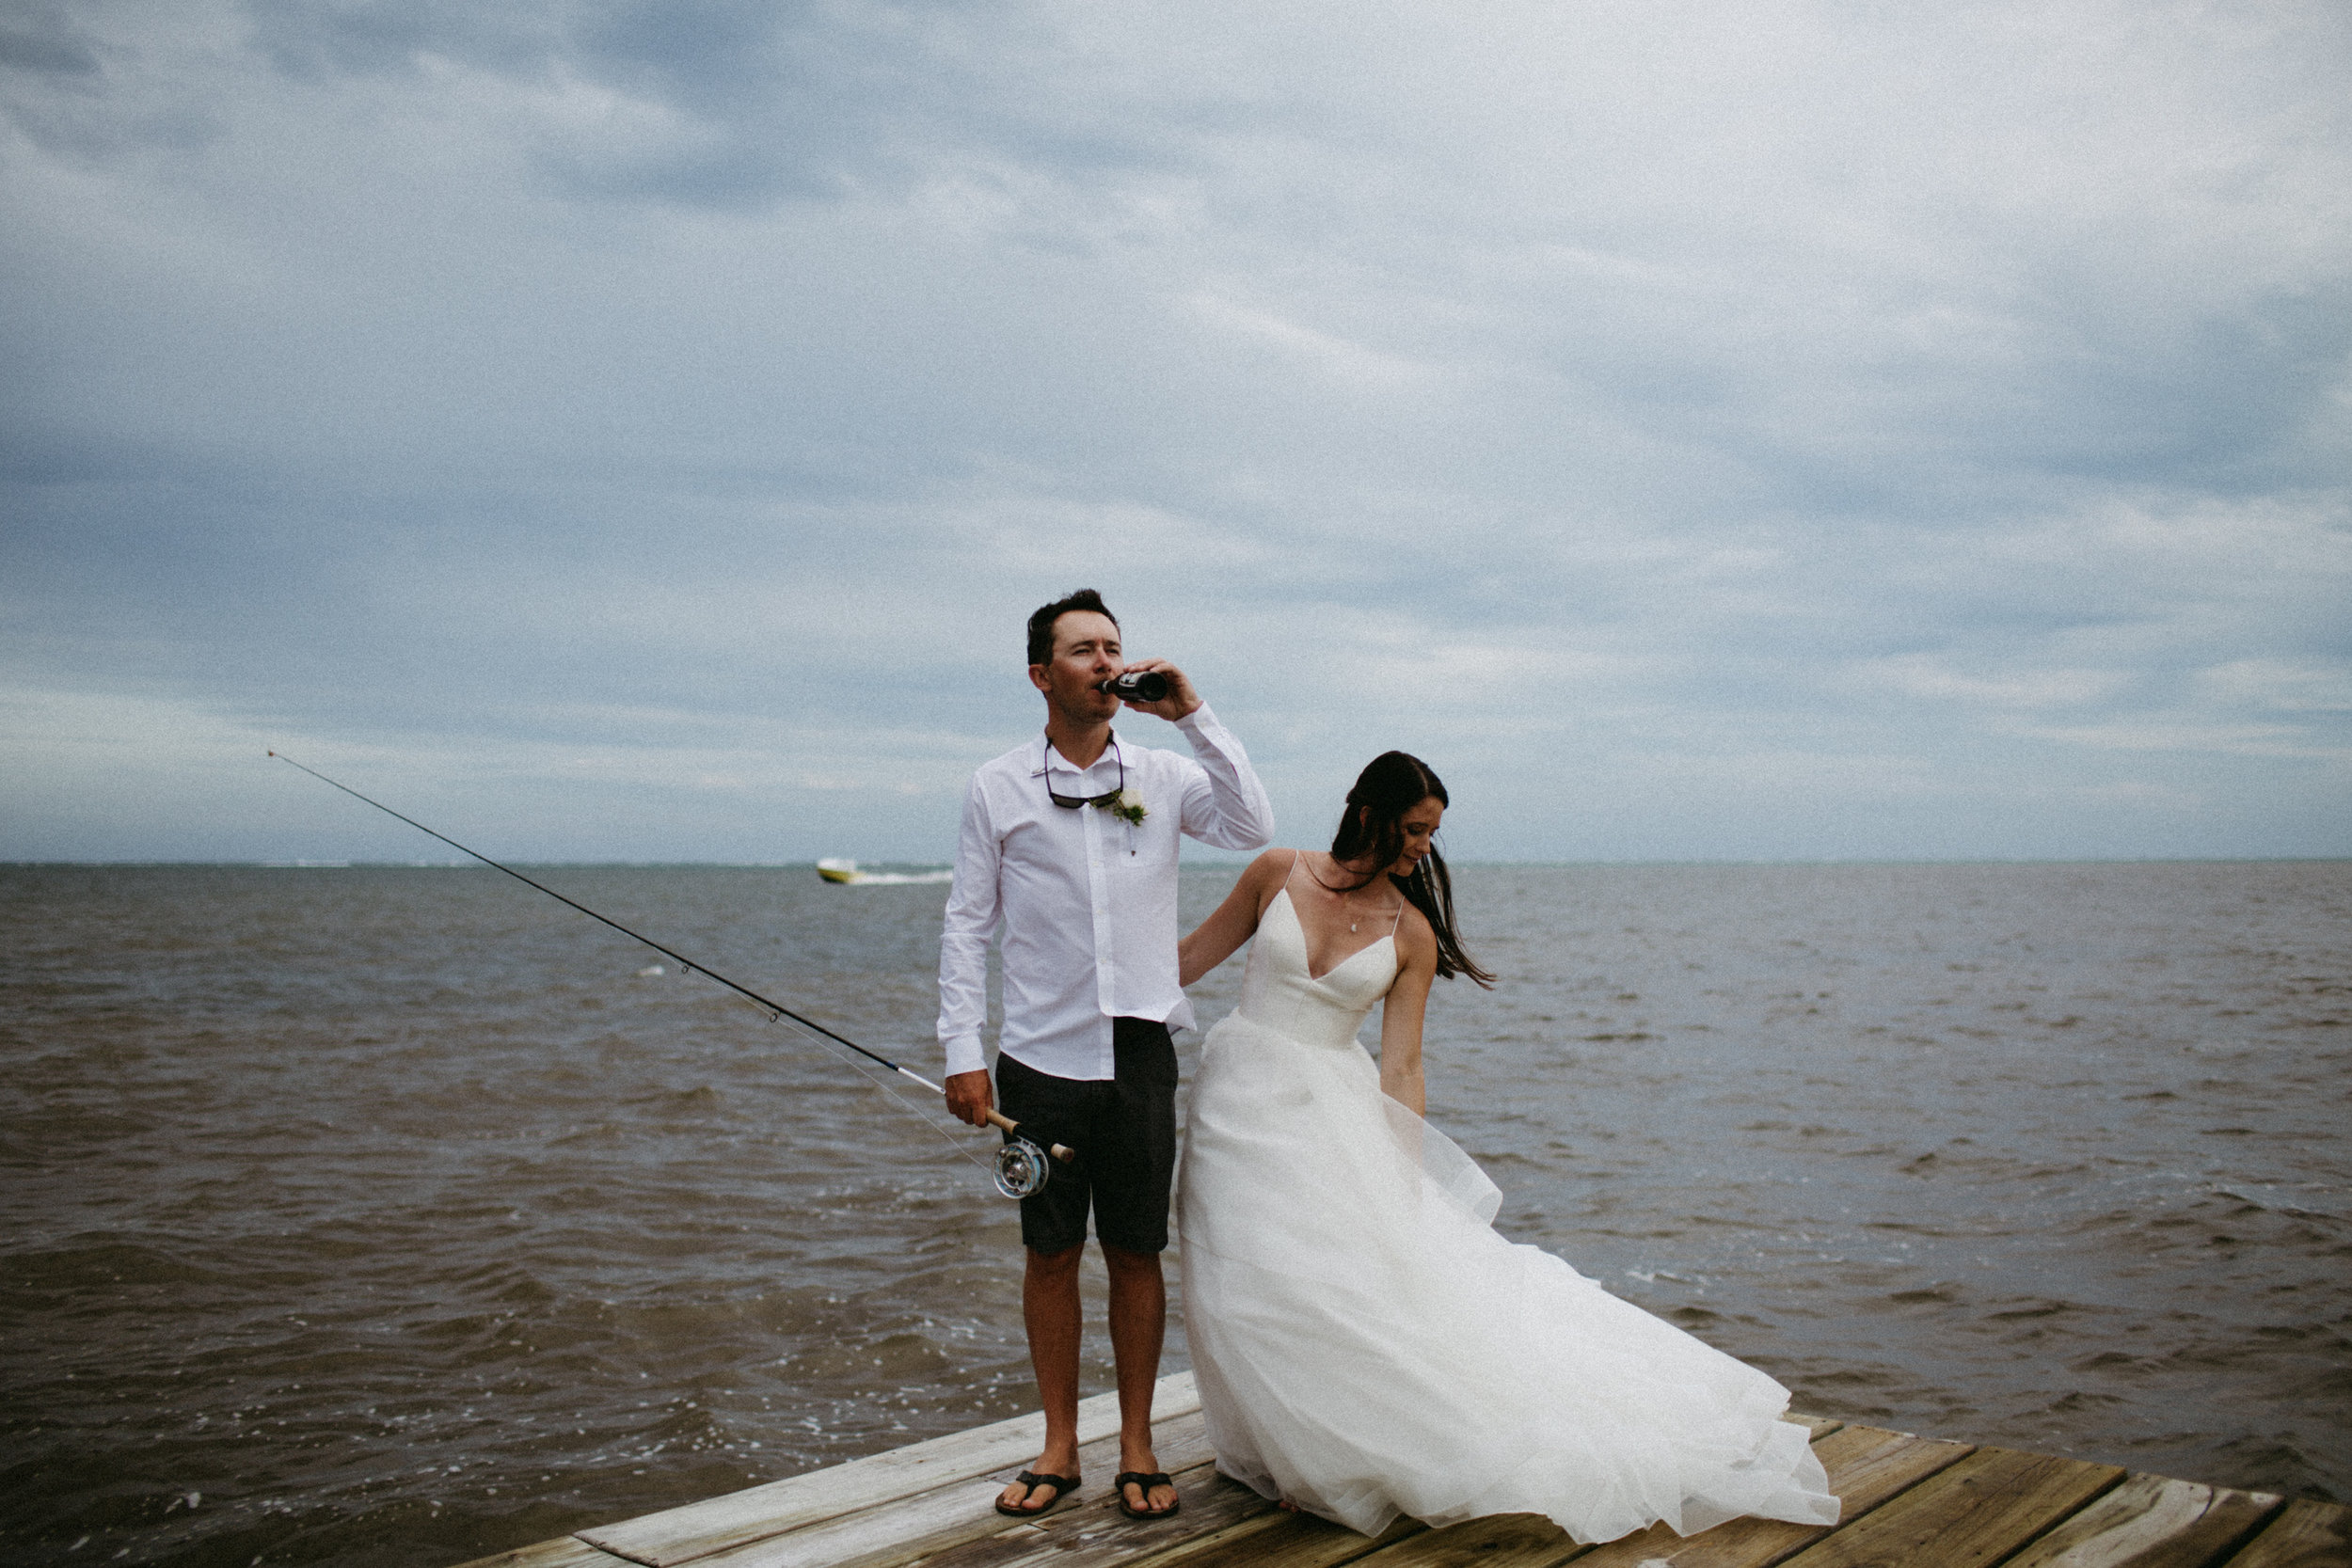 san-pescador-belize-wedding-christinemariephoto-j-k-48.jpg